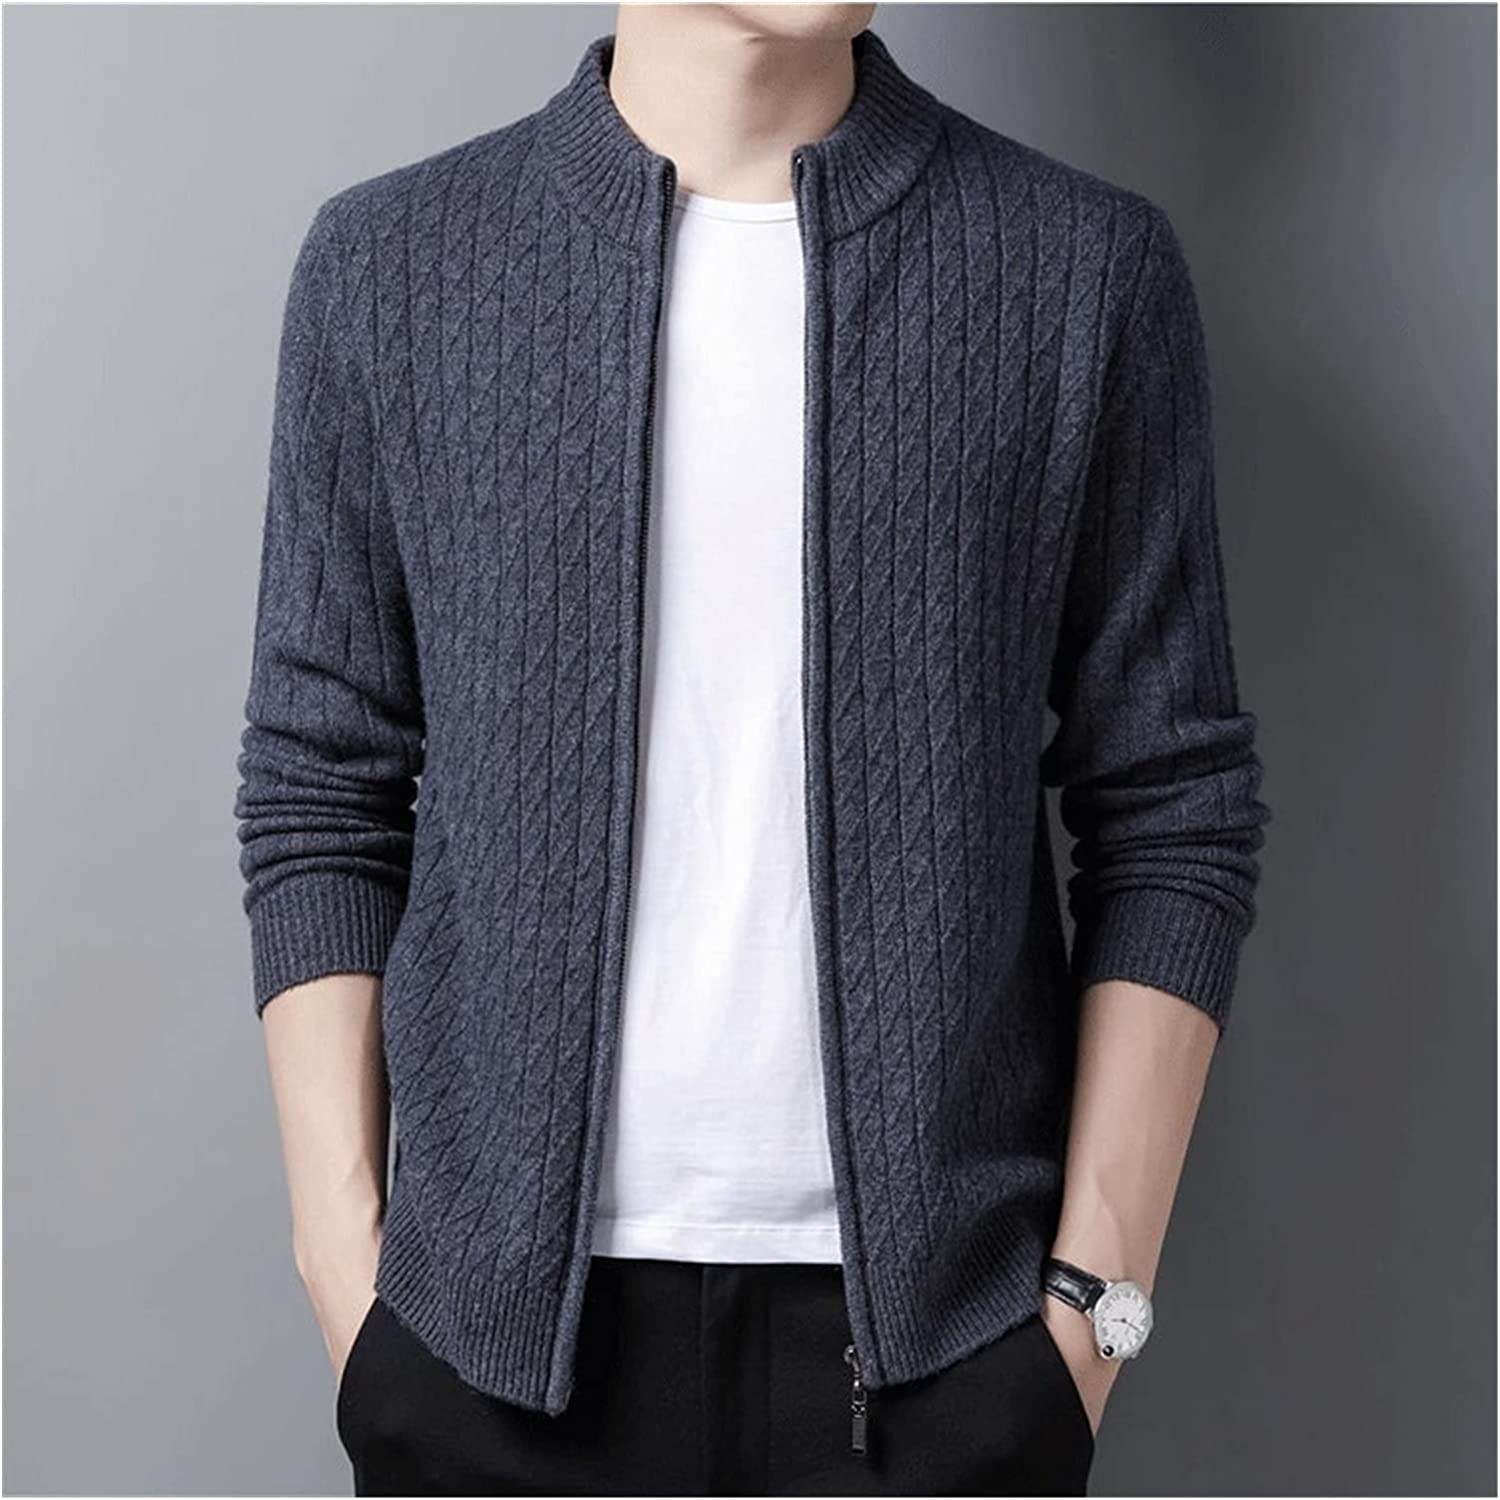 LSDJGDDE Men Wool Cardigan Men Clothing Autumn Winter Thick Warm Sweatercoat Sweater (Color : Gray, Size : M Code)